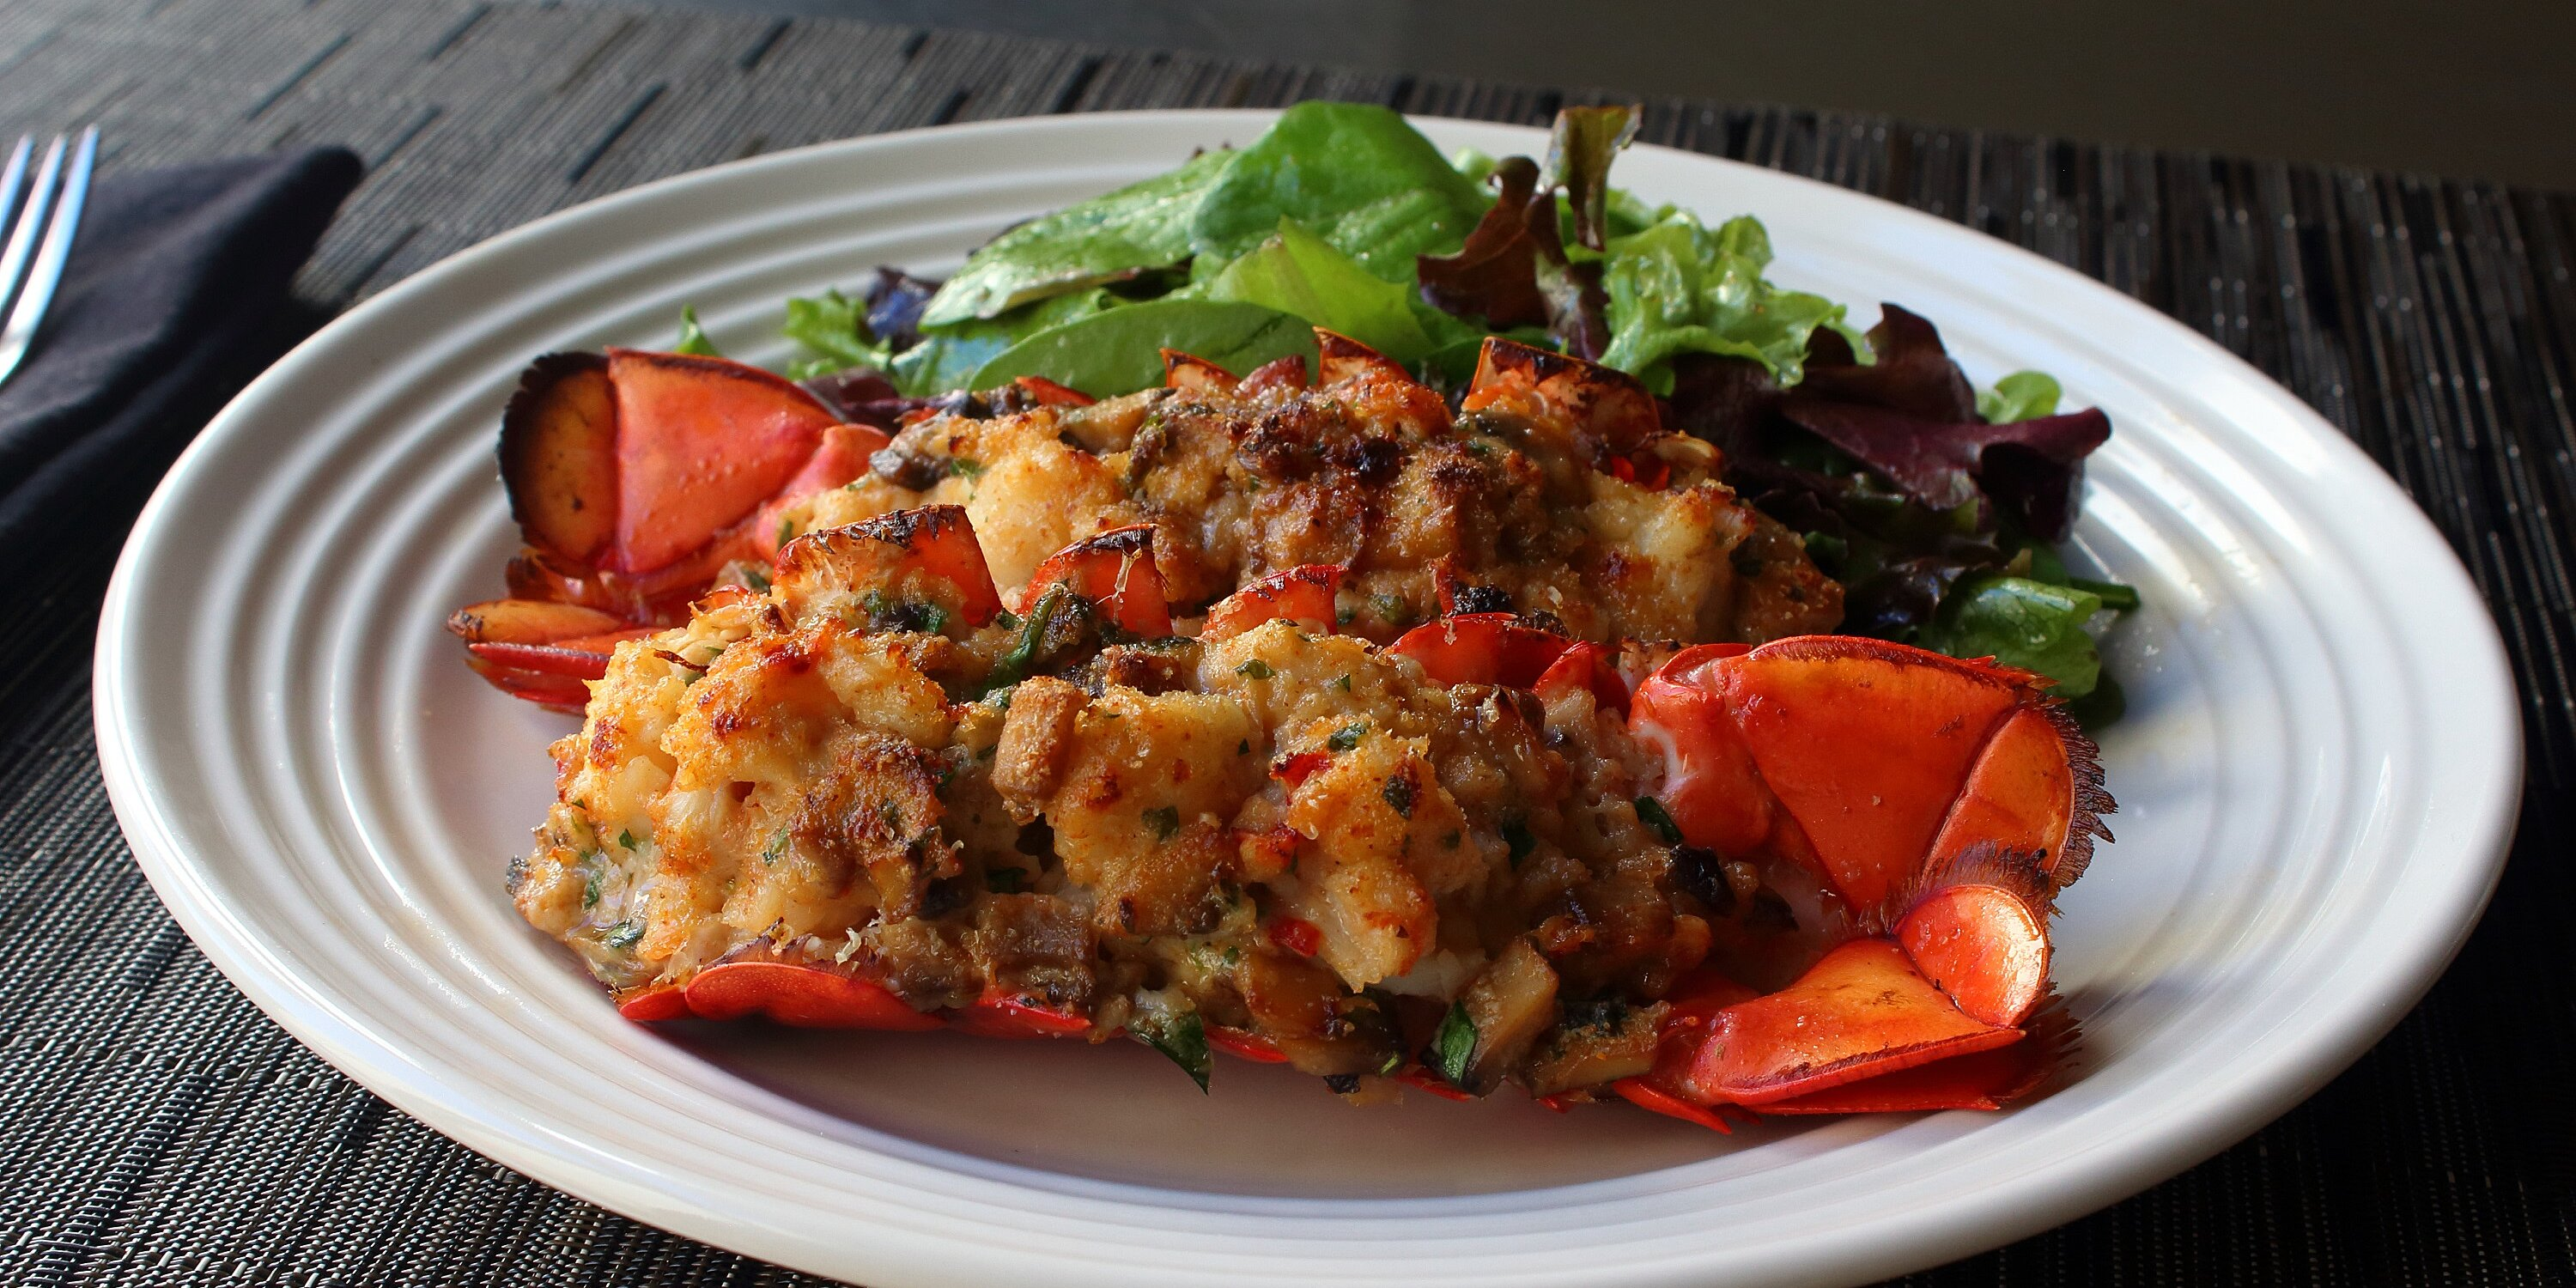 chef johns lobster thermidor recipe